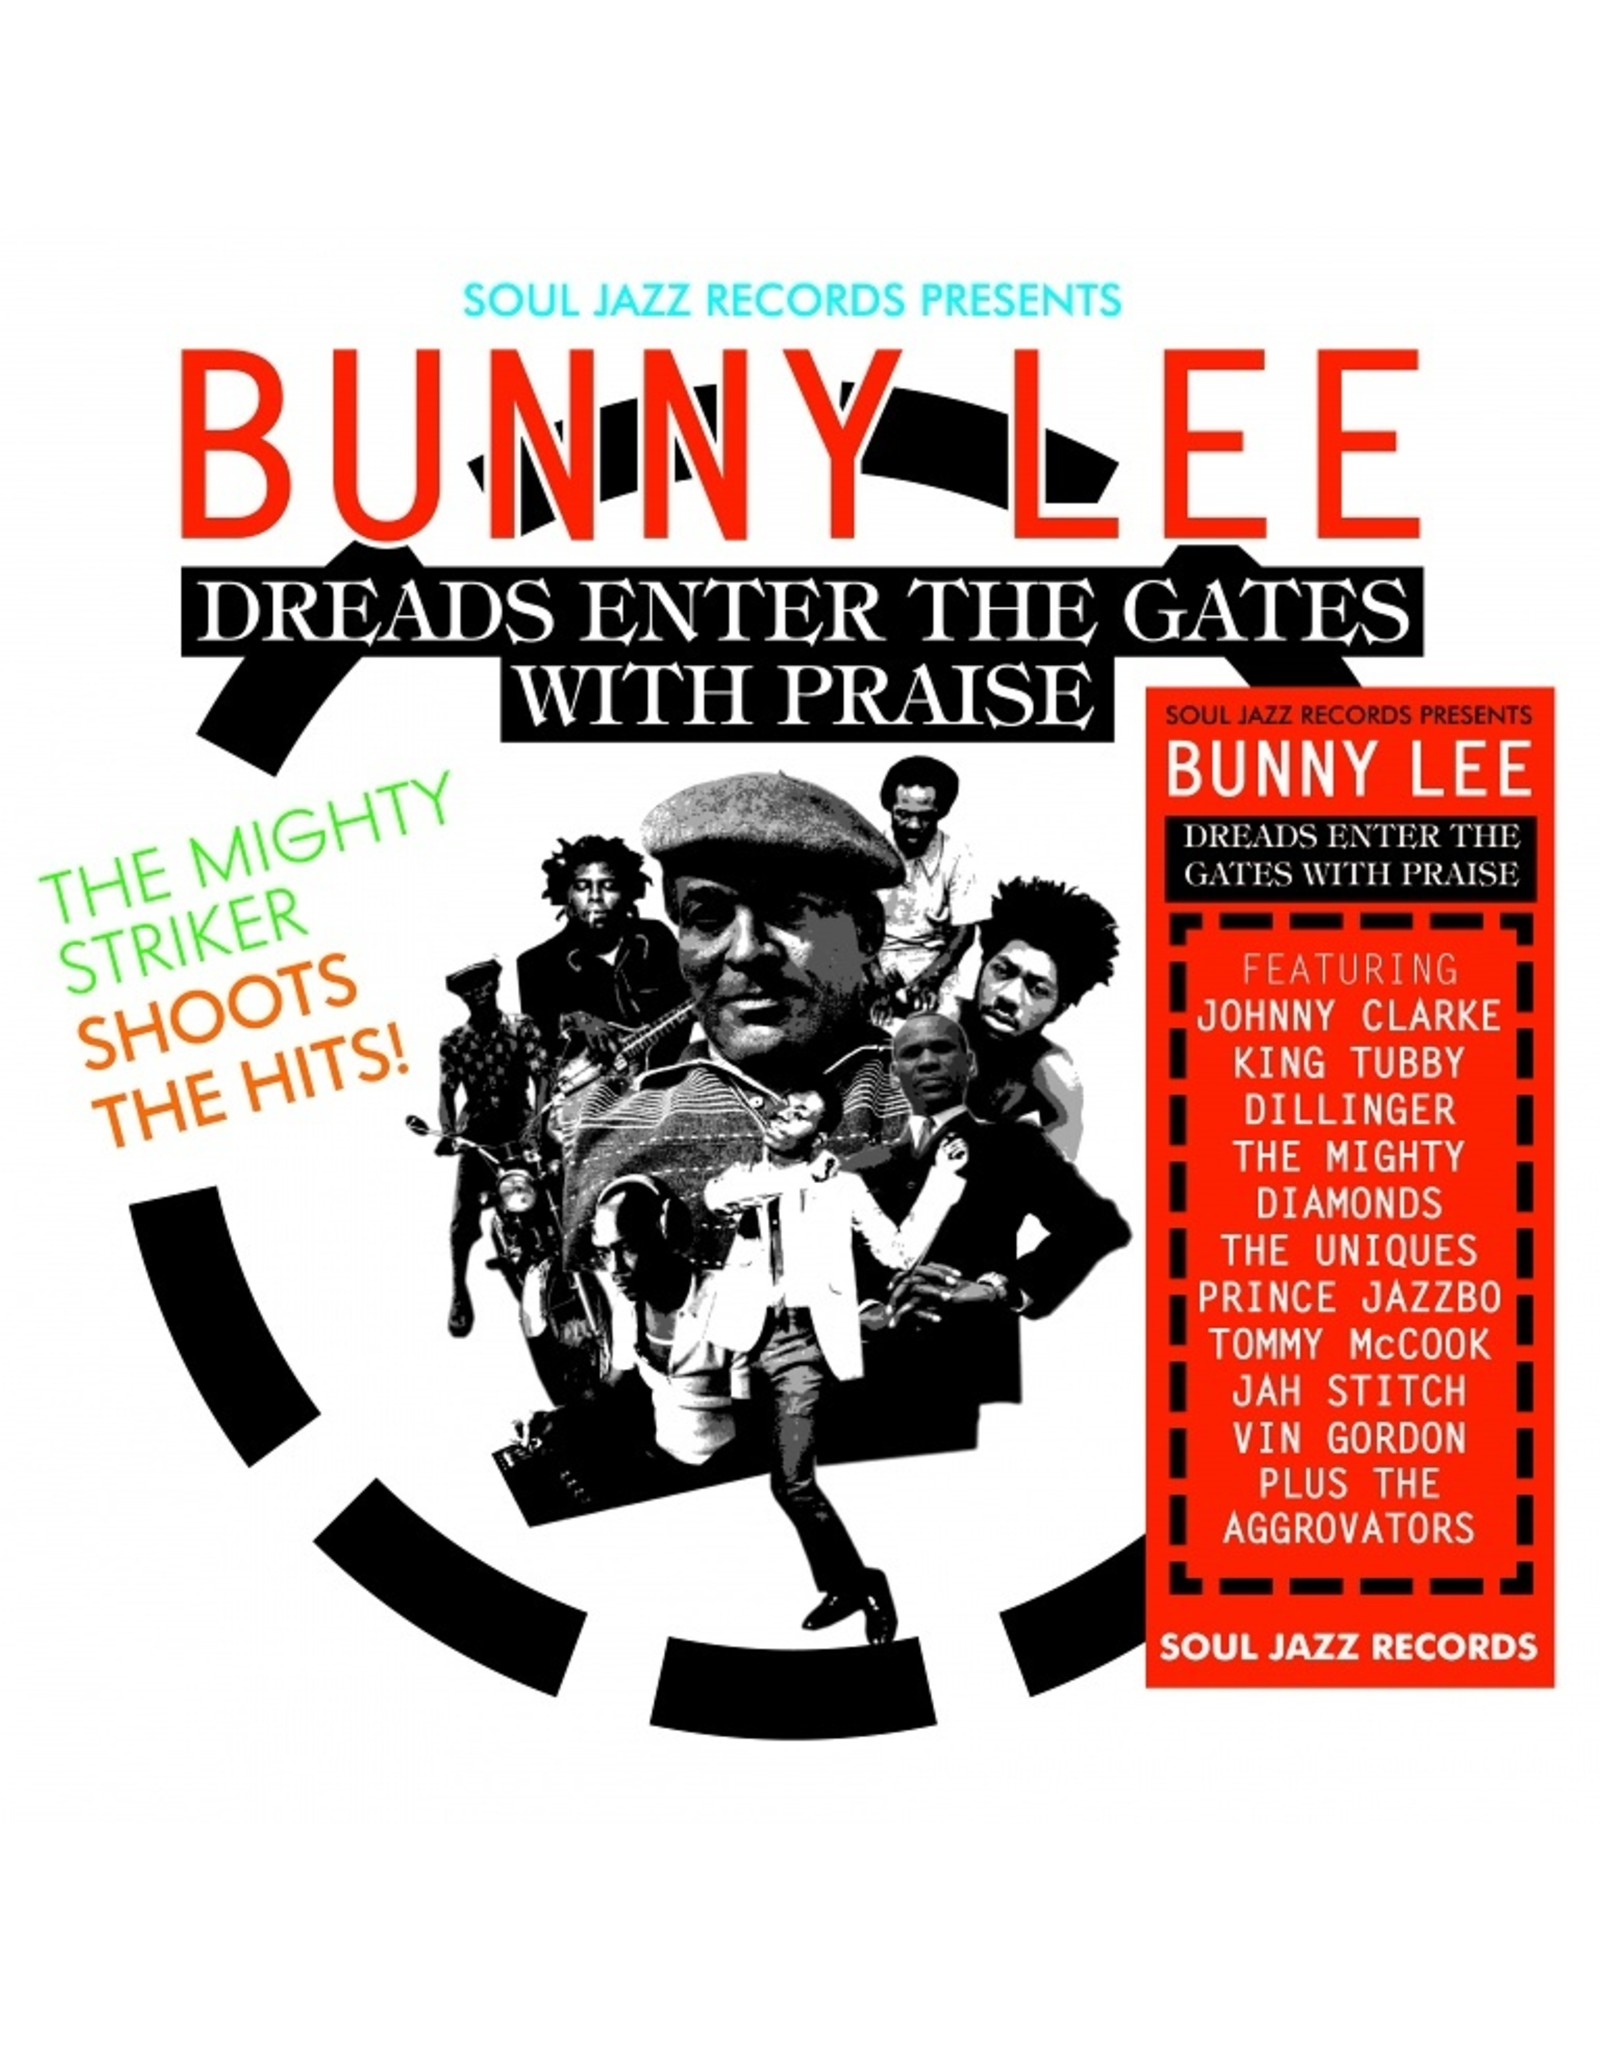 New Vinyl Bunny Lee - Dreads Enter The Gates With Praise 2LP